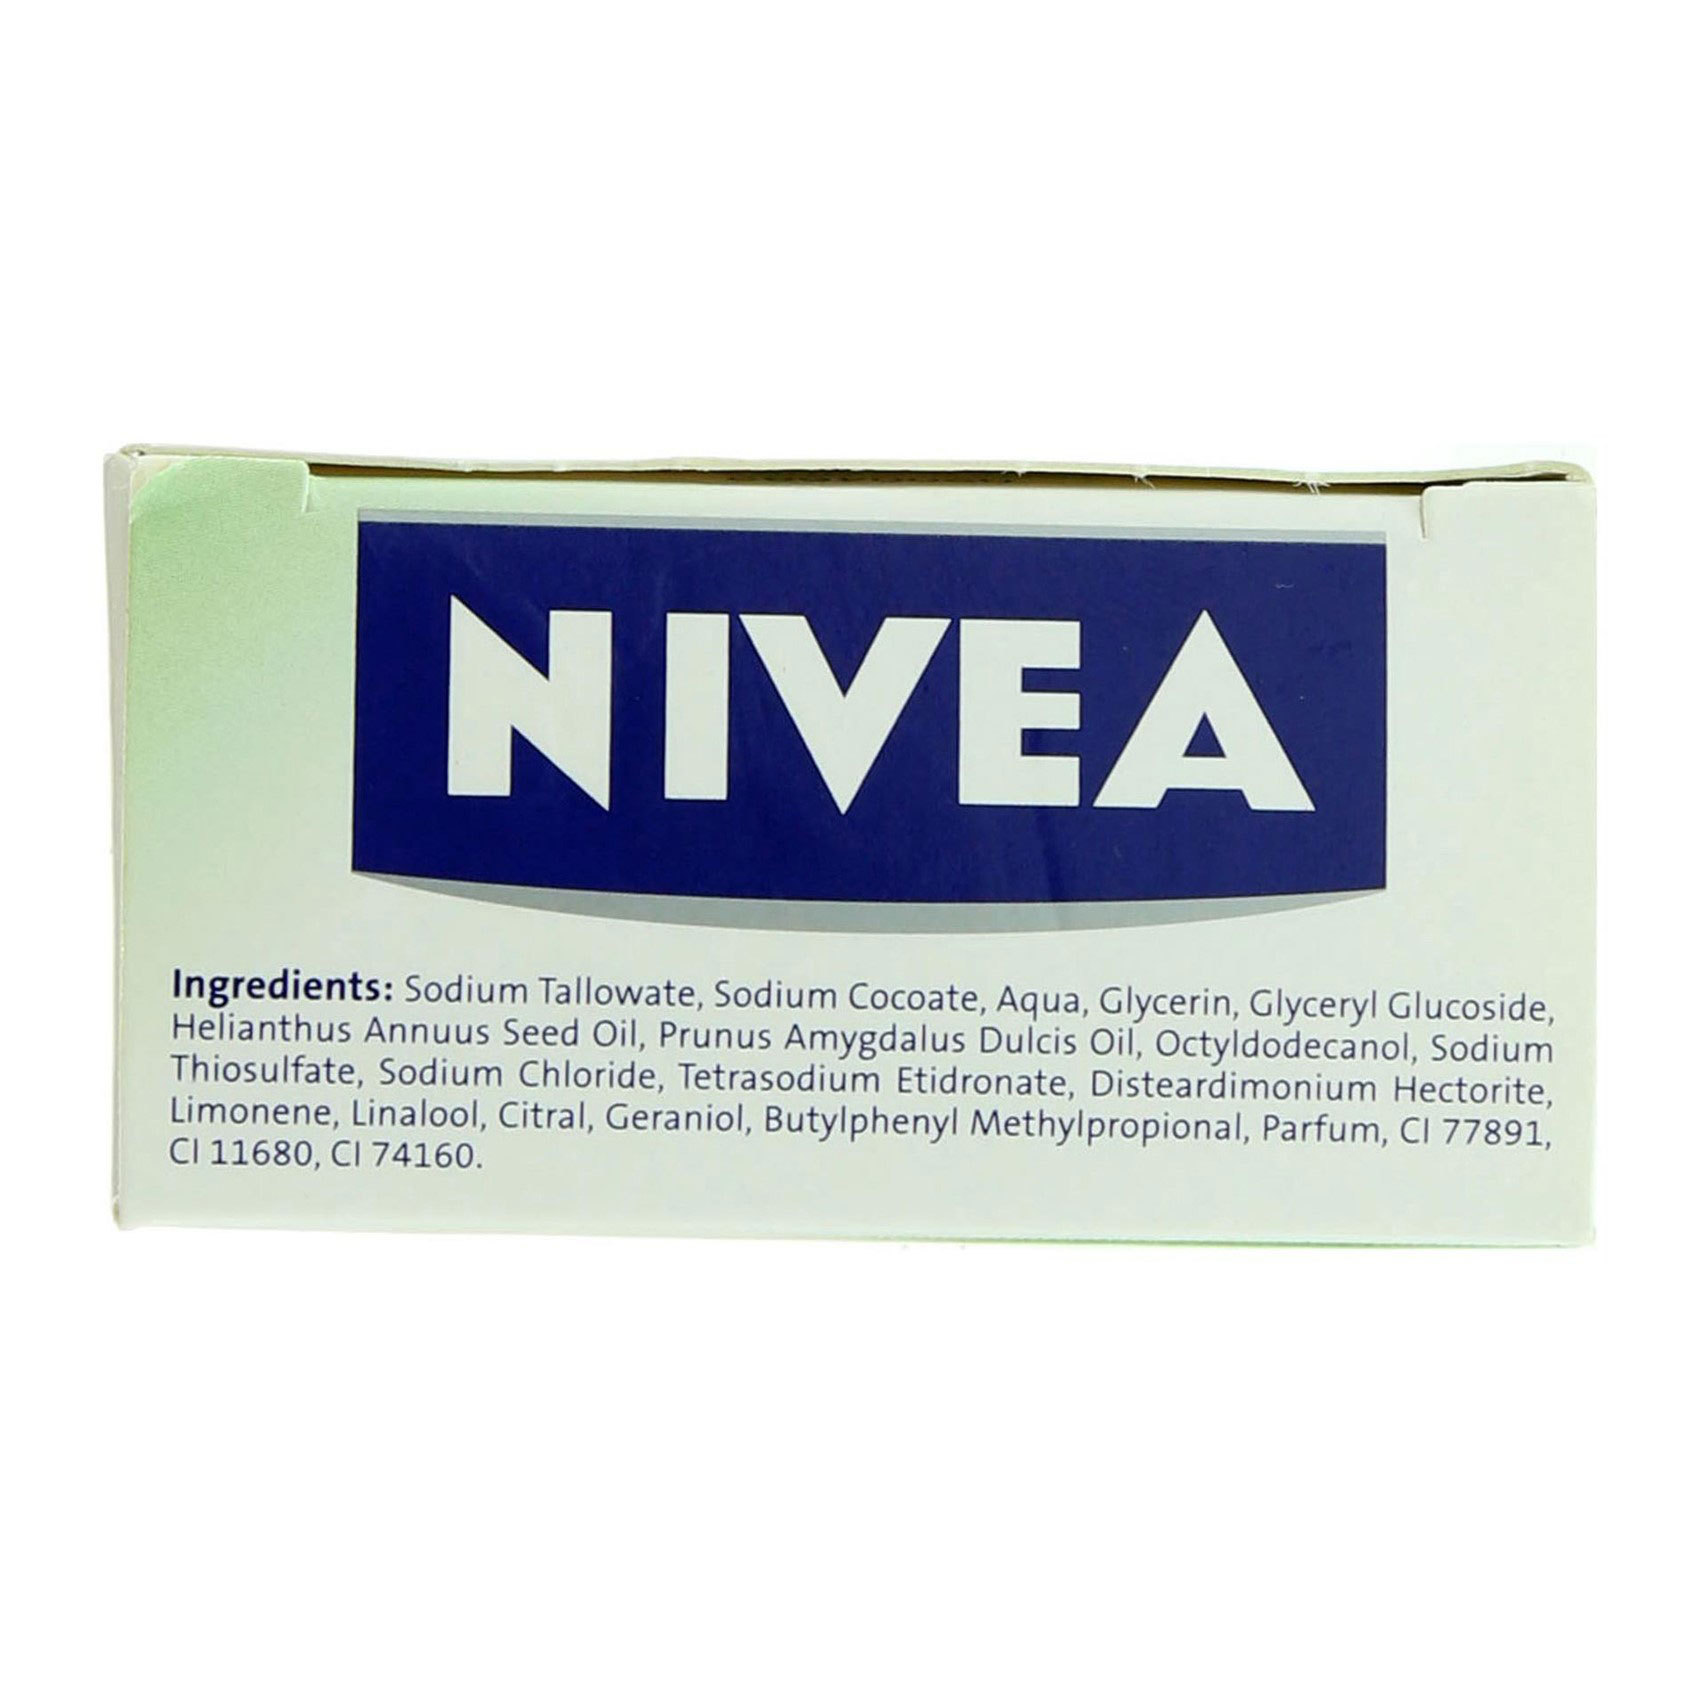 NIVEA SOAP LEMON GRASS & OIL 100GMS